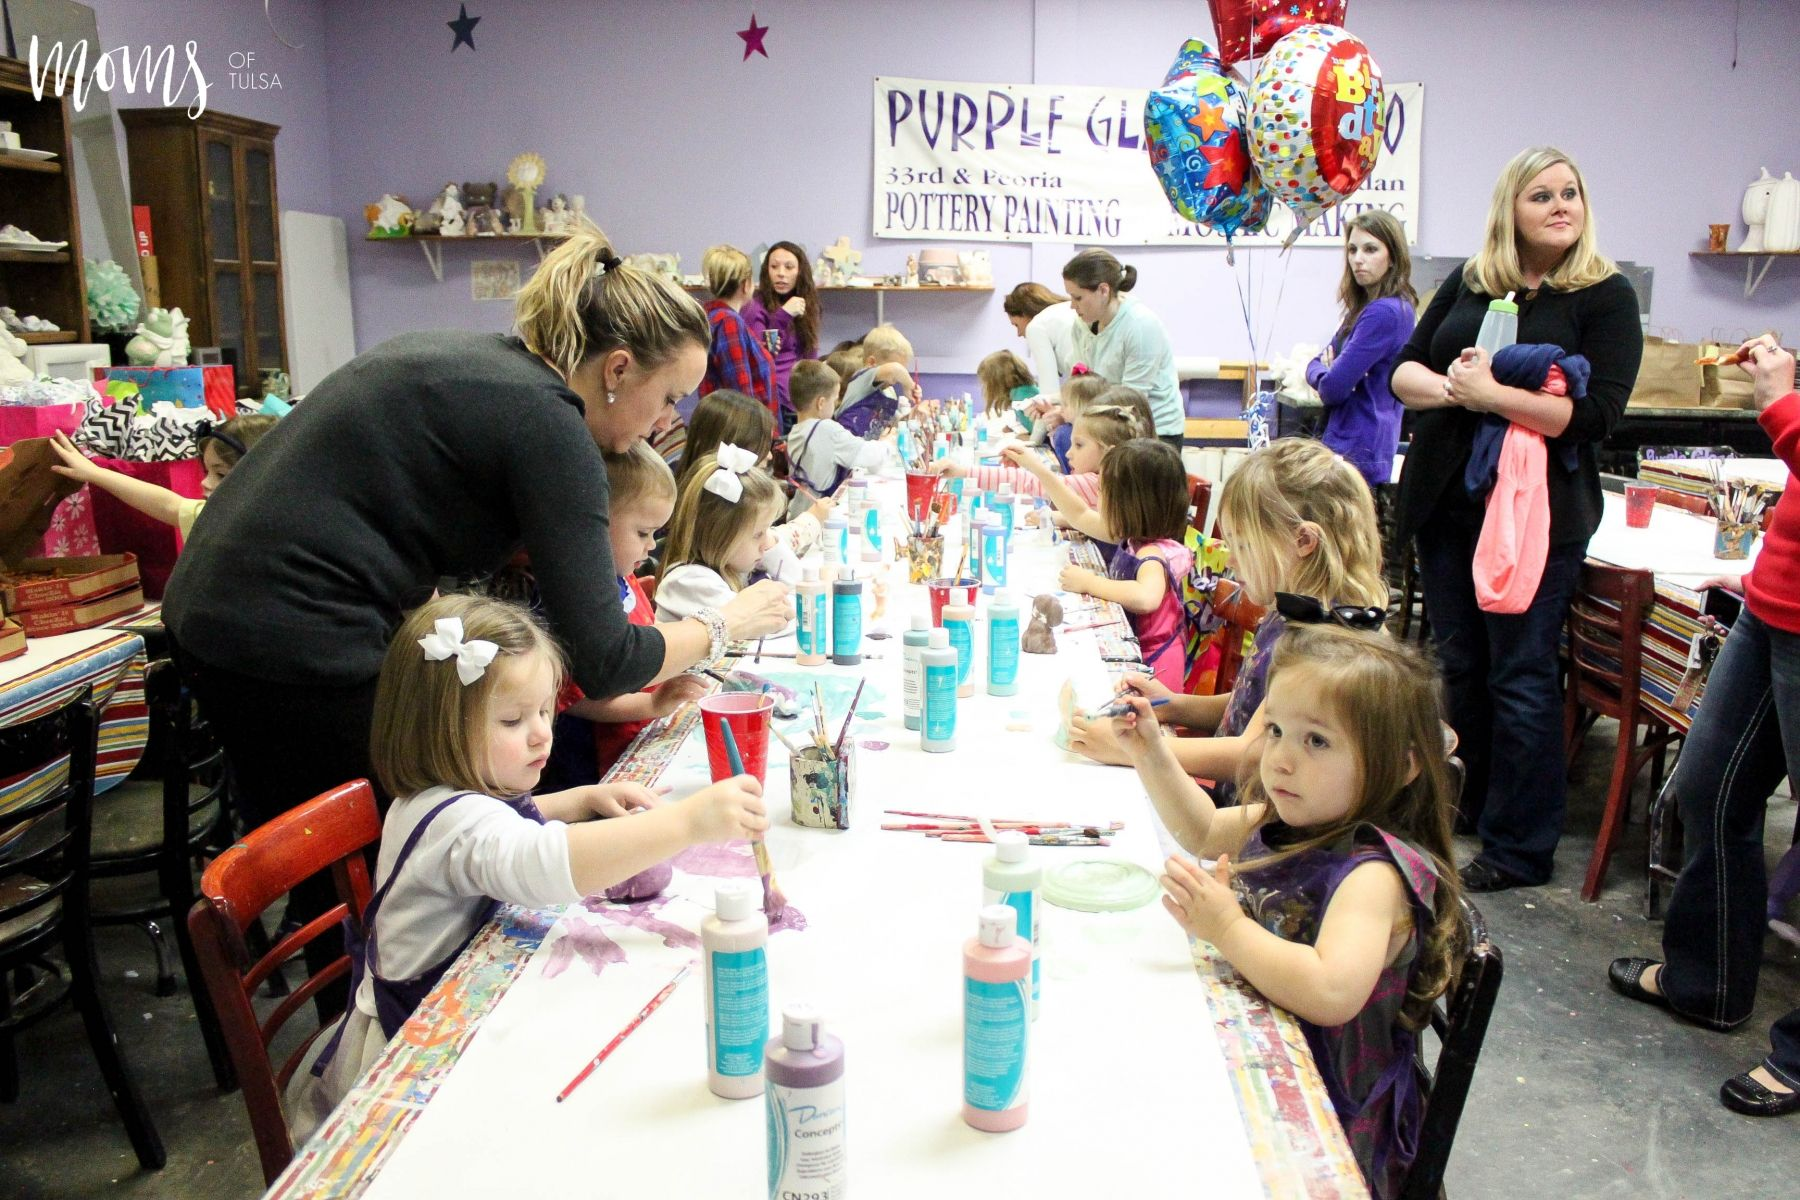 Purple Glaze Studios pottery painting birthday party in Tulsa